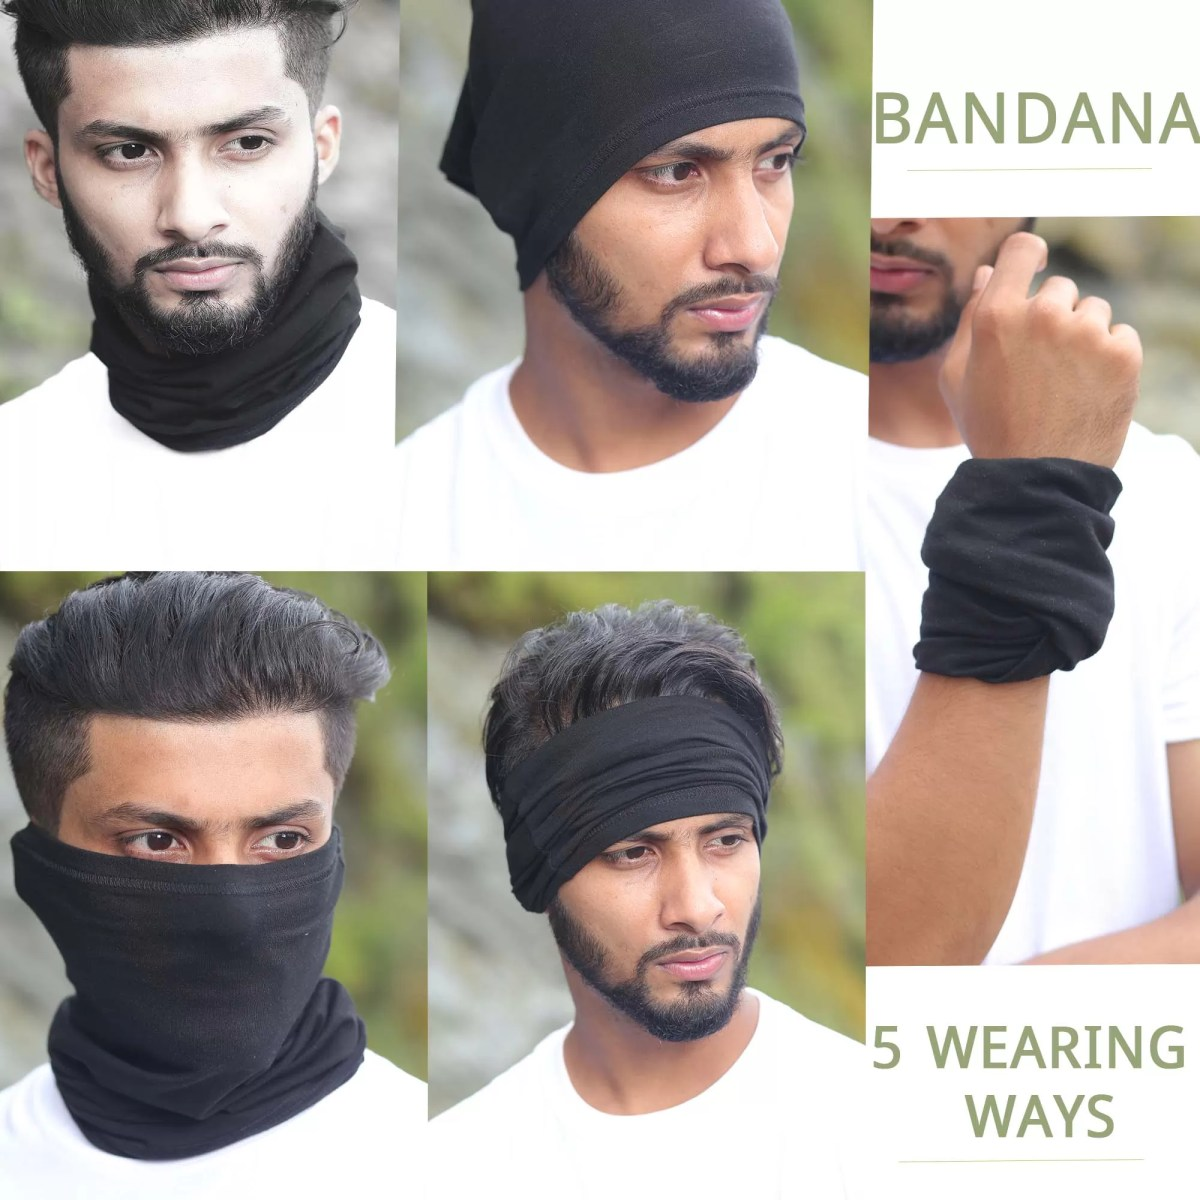 Bandana 5 WEARING WAYS